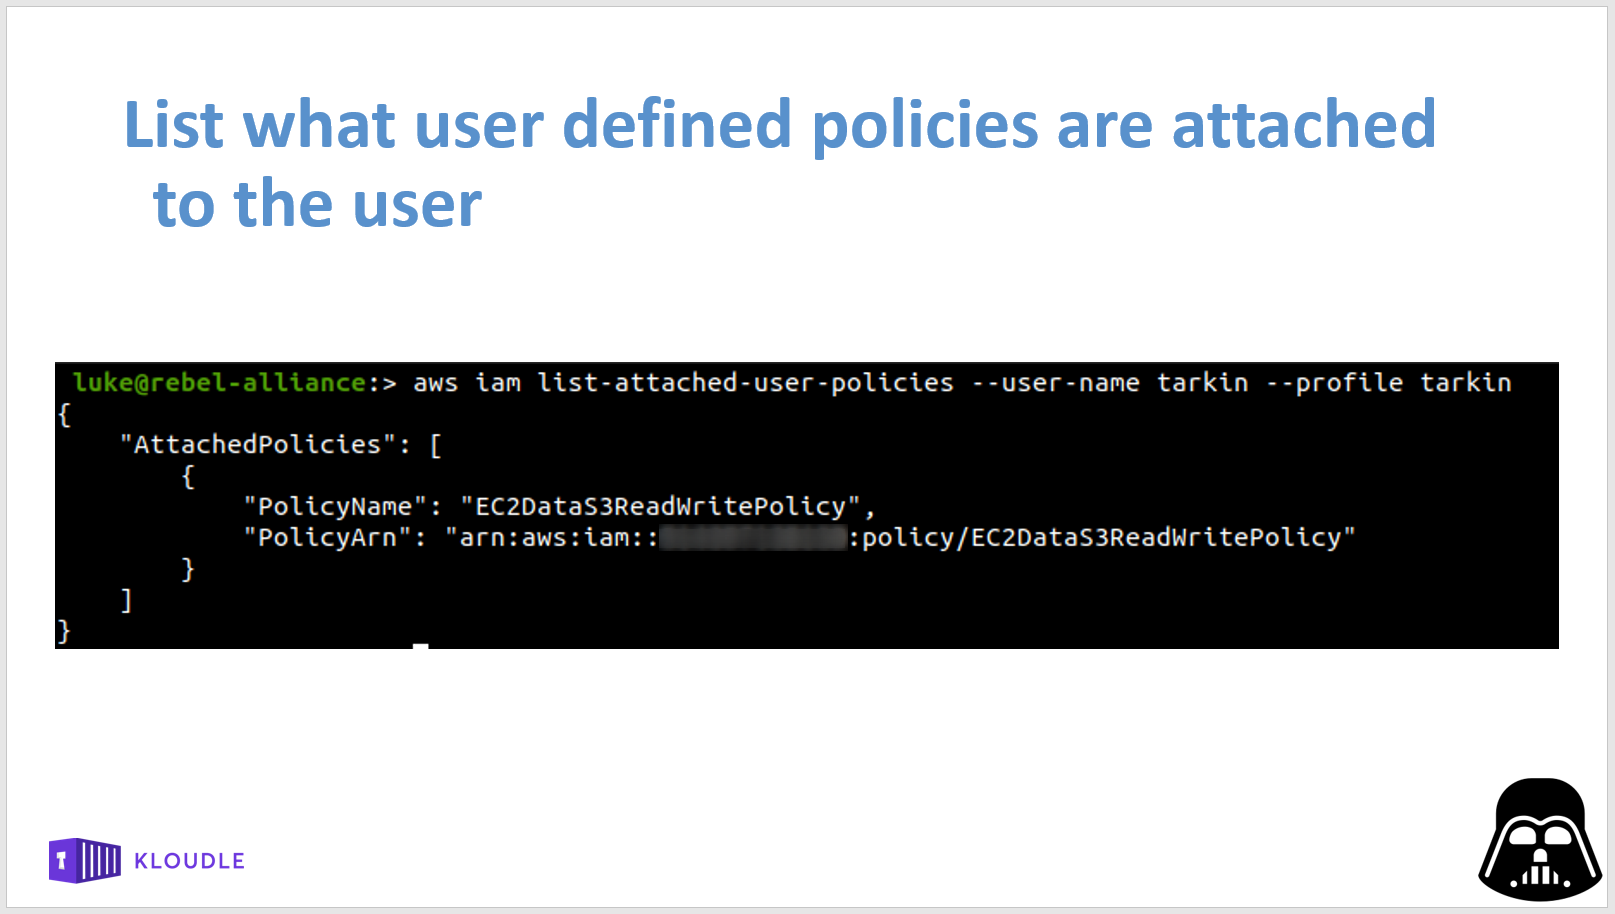 List user defined policies attached